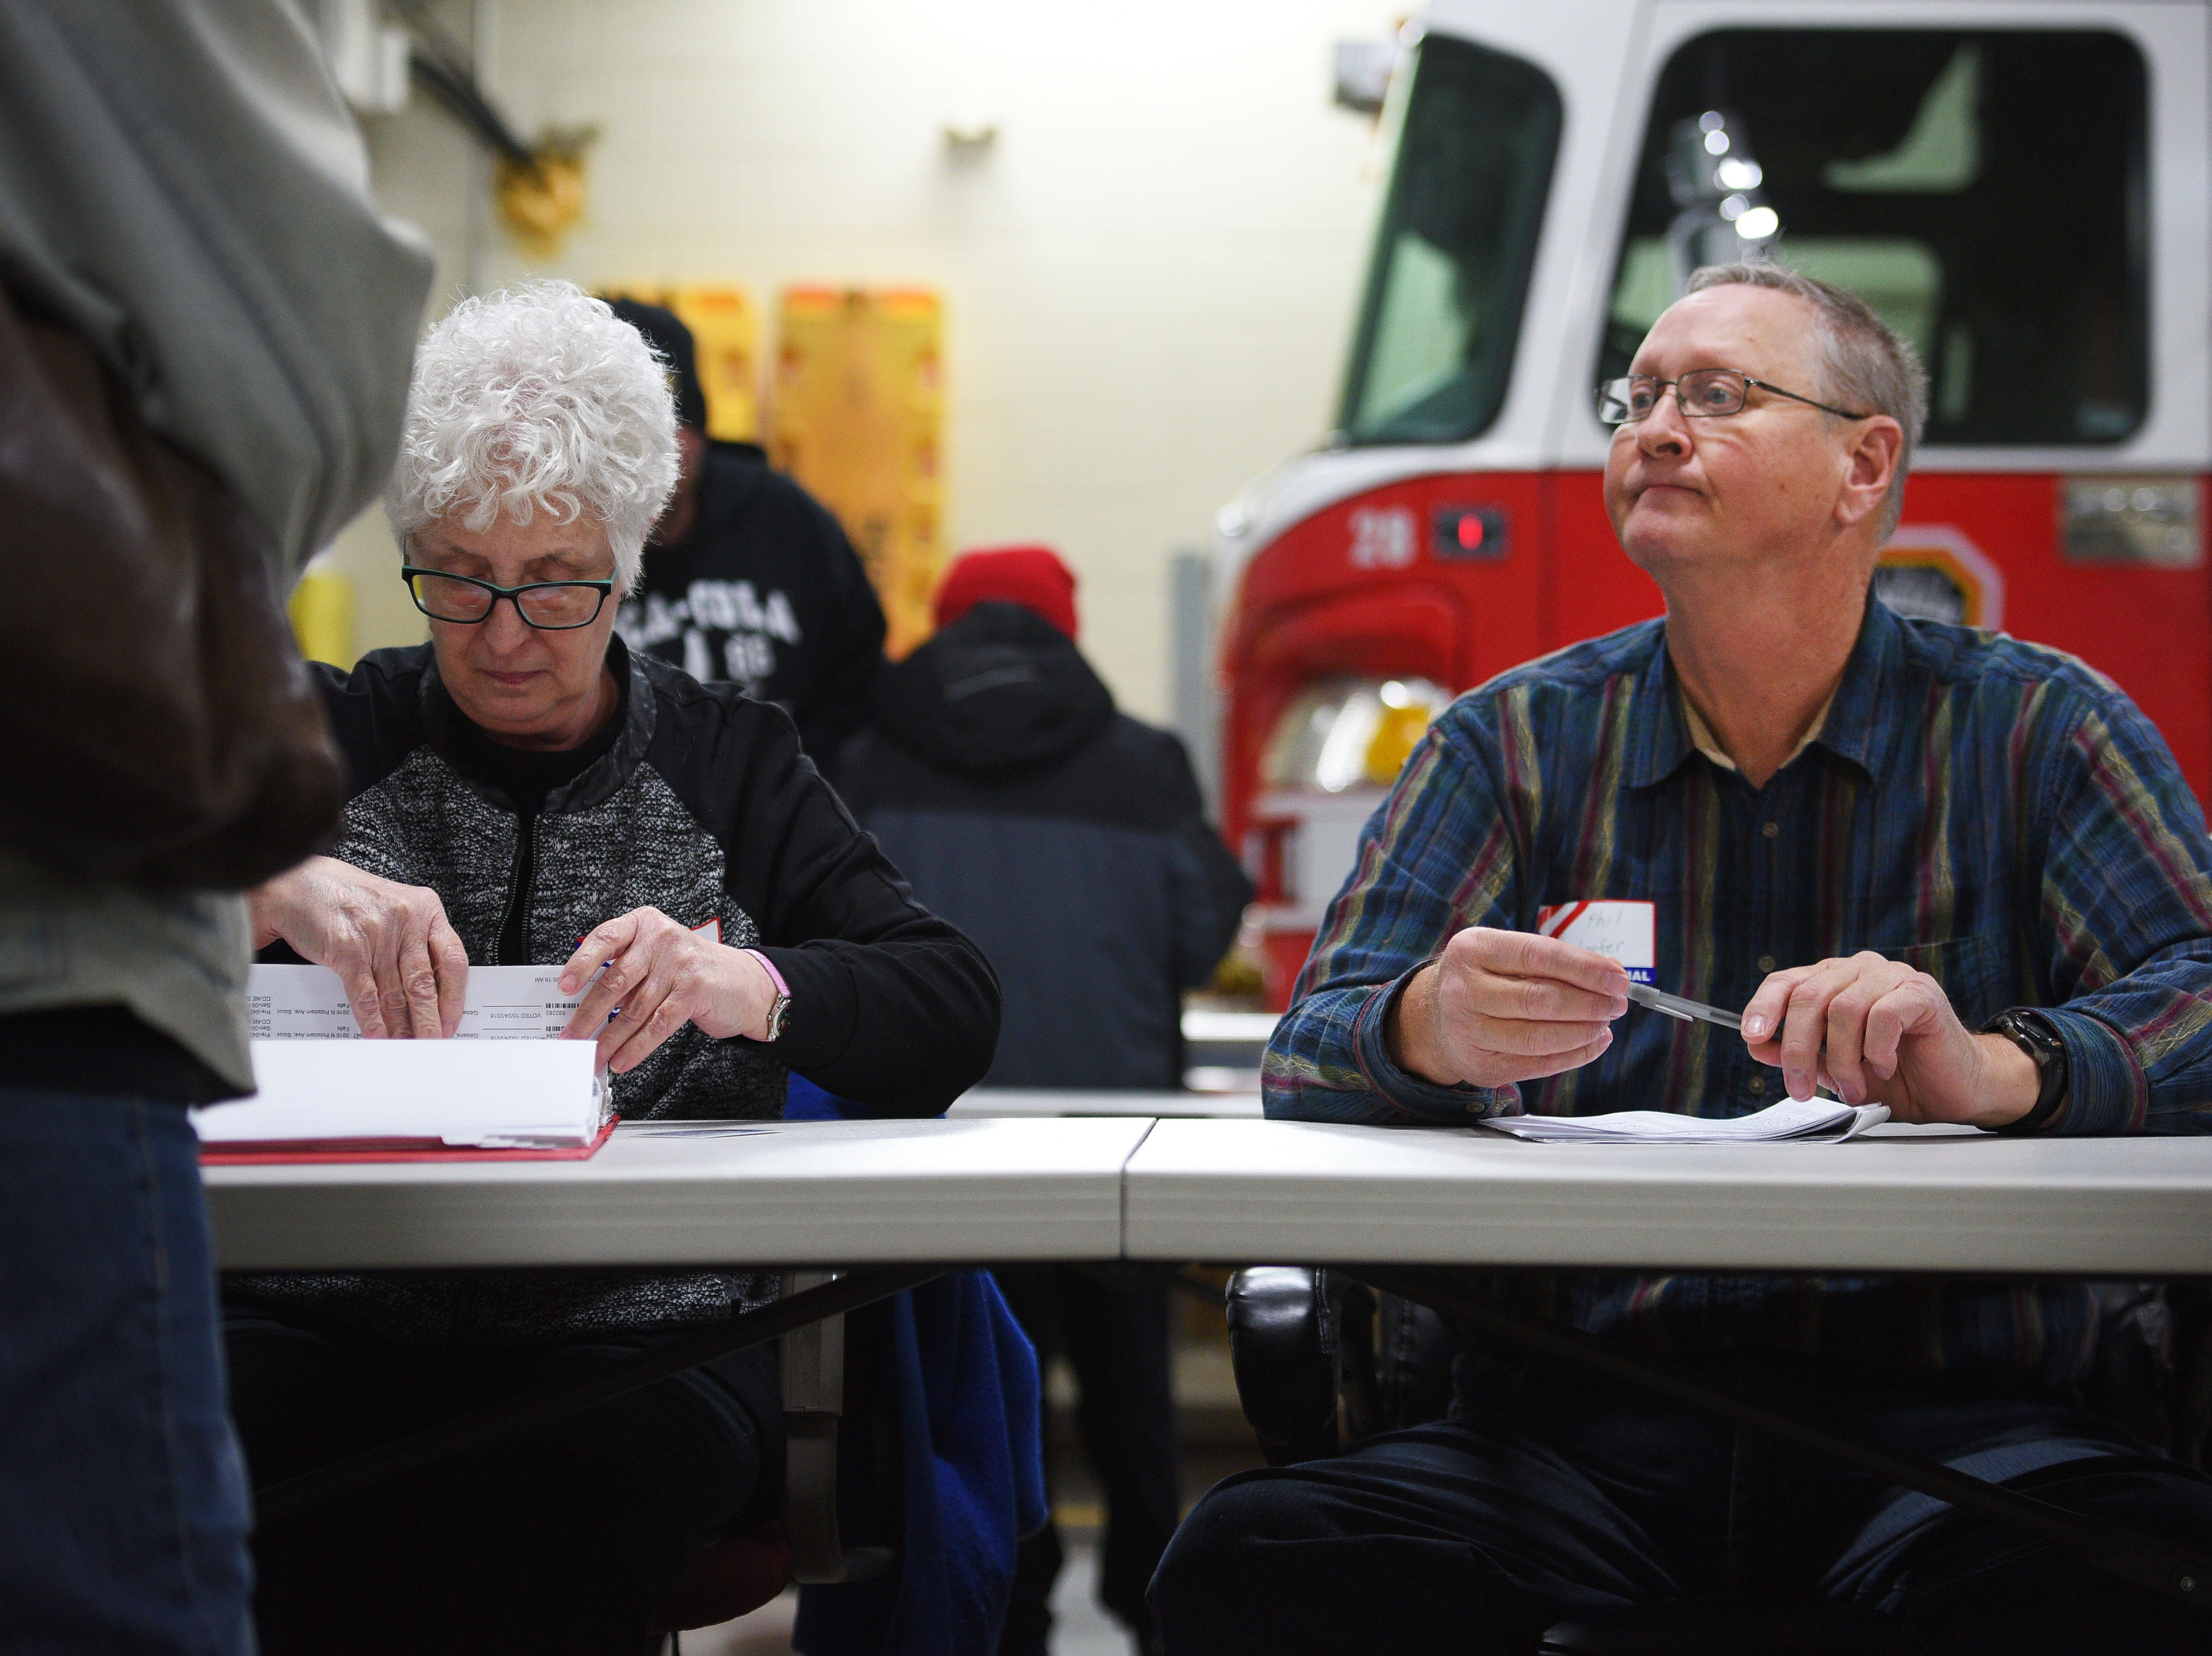 Poll workers Sue Widrig and Phil Schaefer assist voters for the 2018 midterm elections Tuesday, Nov. 6, at Fire Station #7 in Sioux Falls.